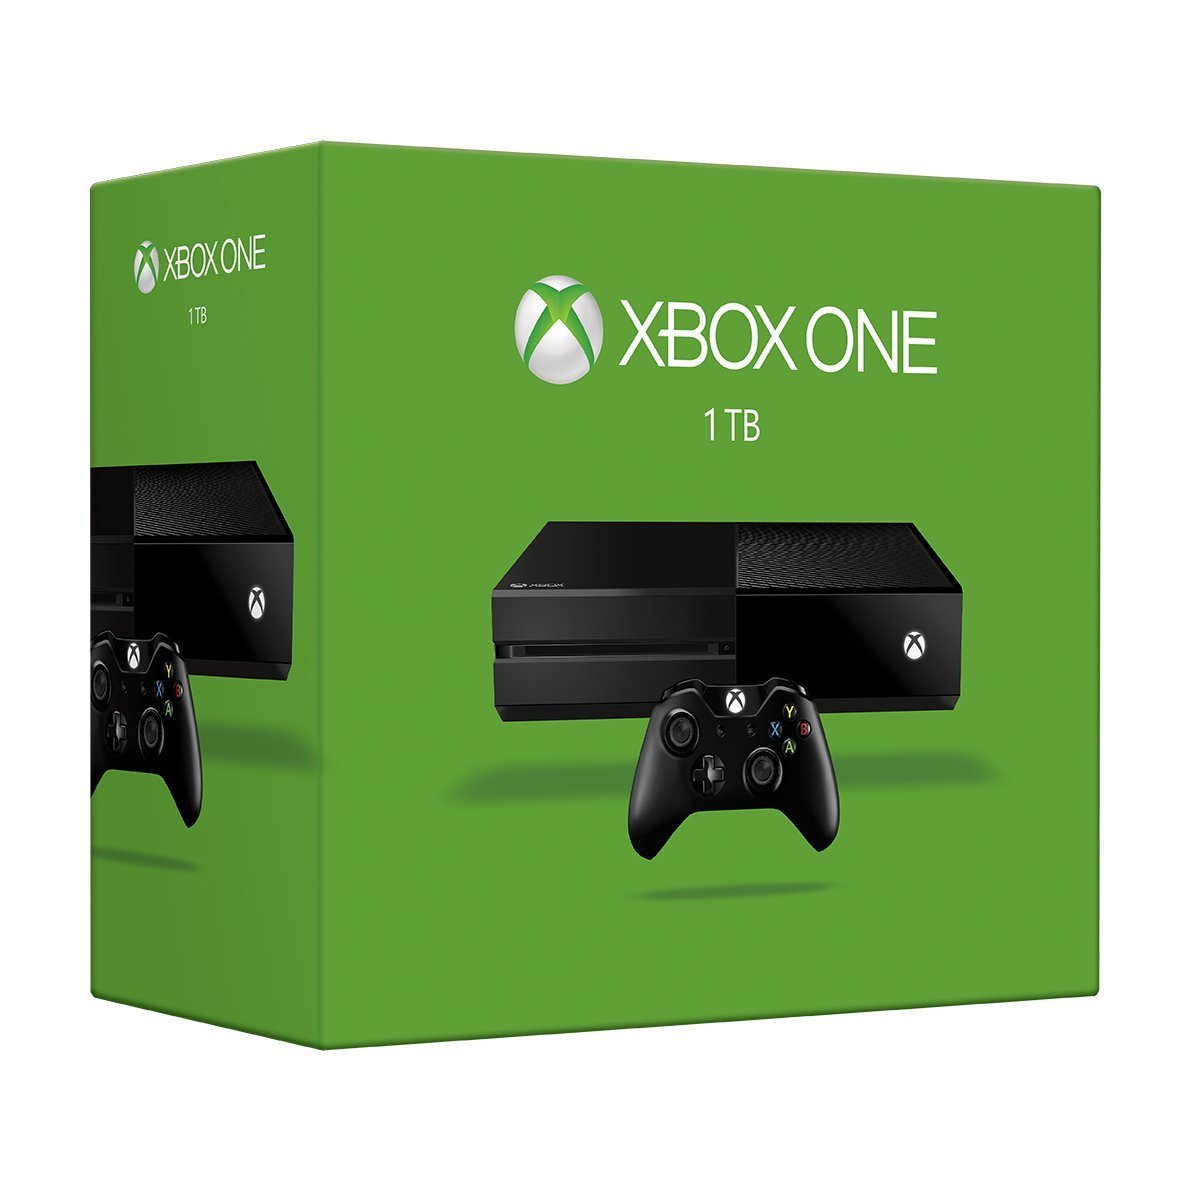 xbox one 1tb amazon 1. Black Bedroom Furniture Sets. Home Design Ideas